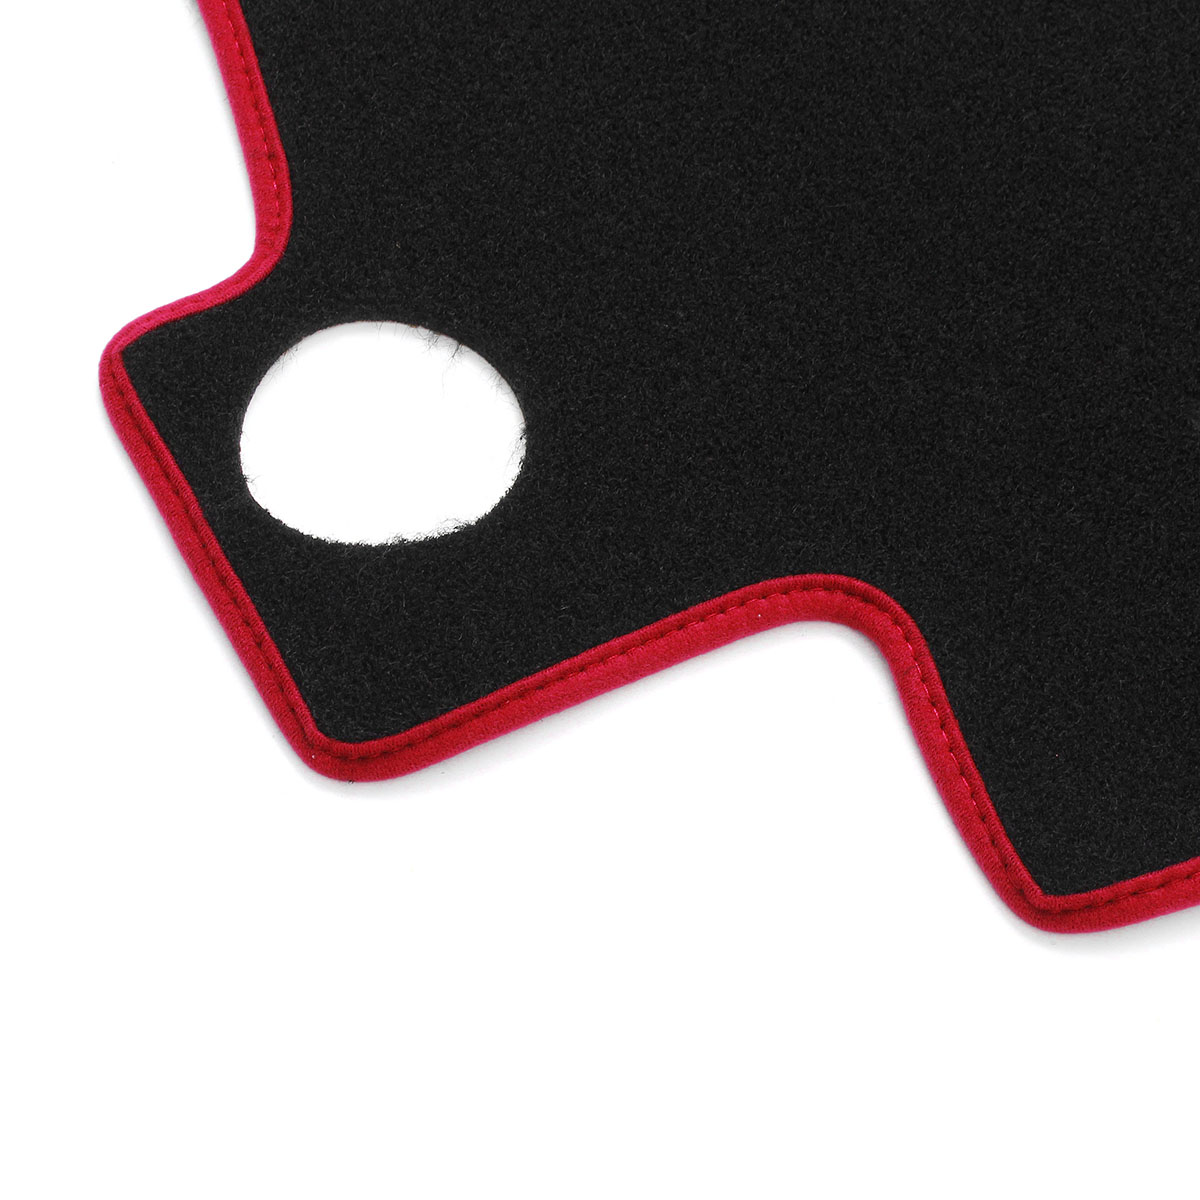 134cm Polyester Non-Slip Car Dash Mat Dashboard Cover Pad for Toyota Corolla 2000-2006